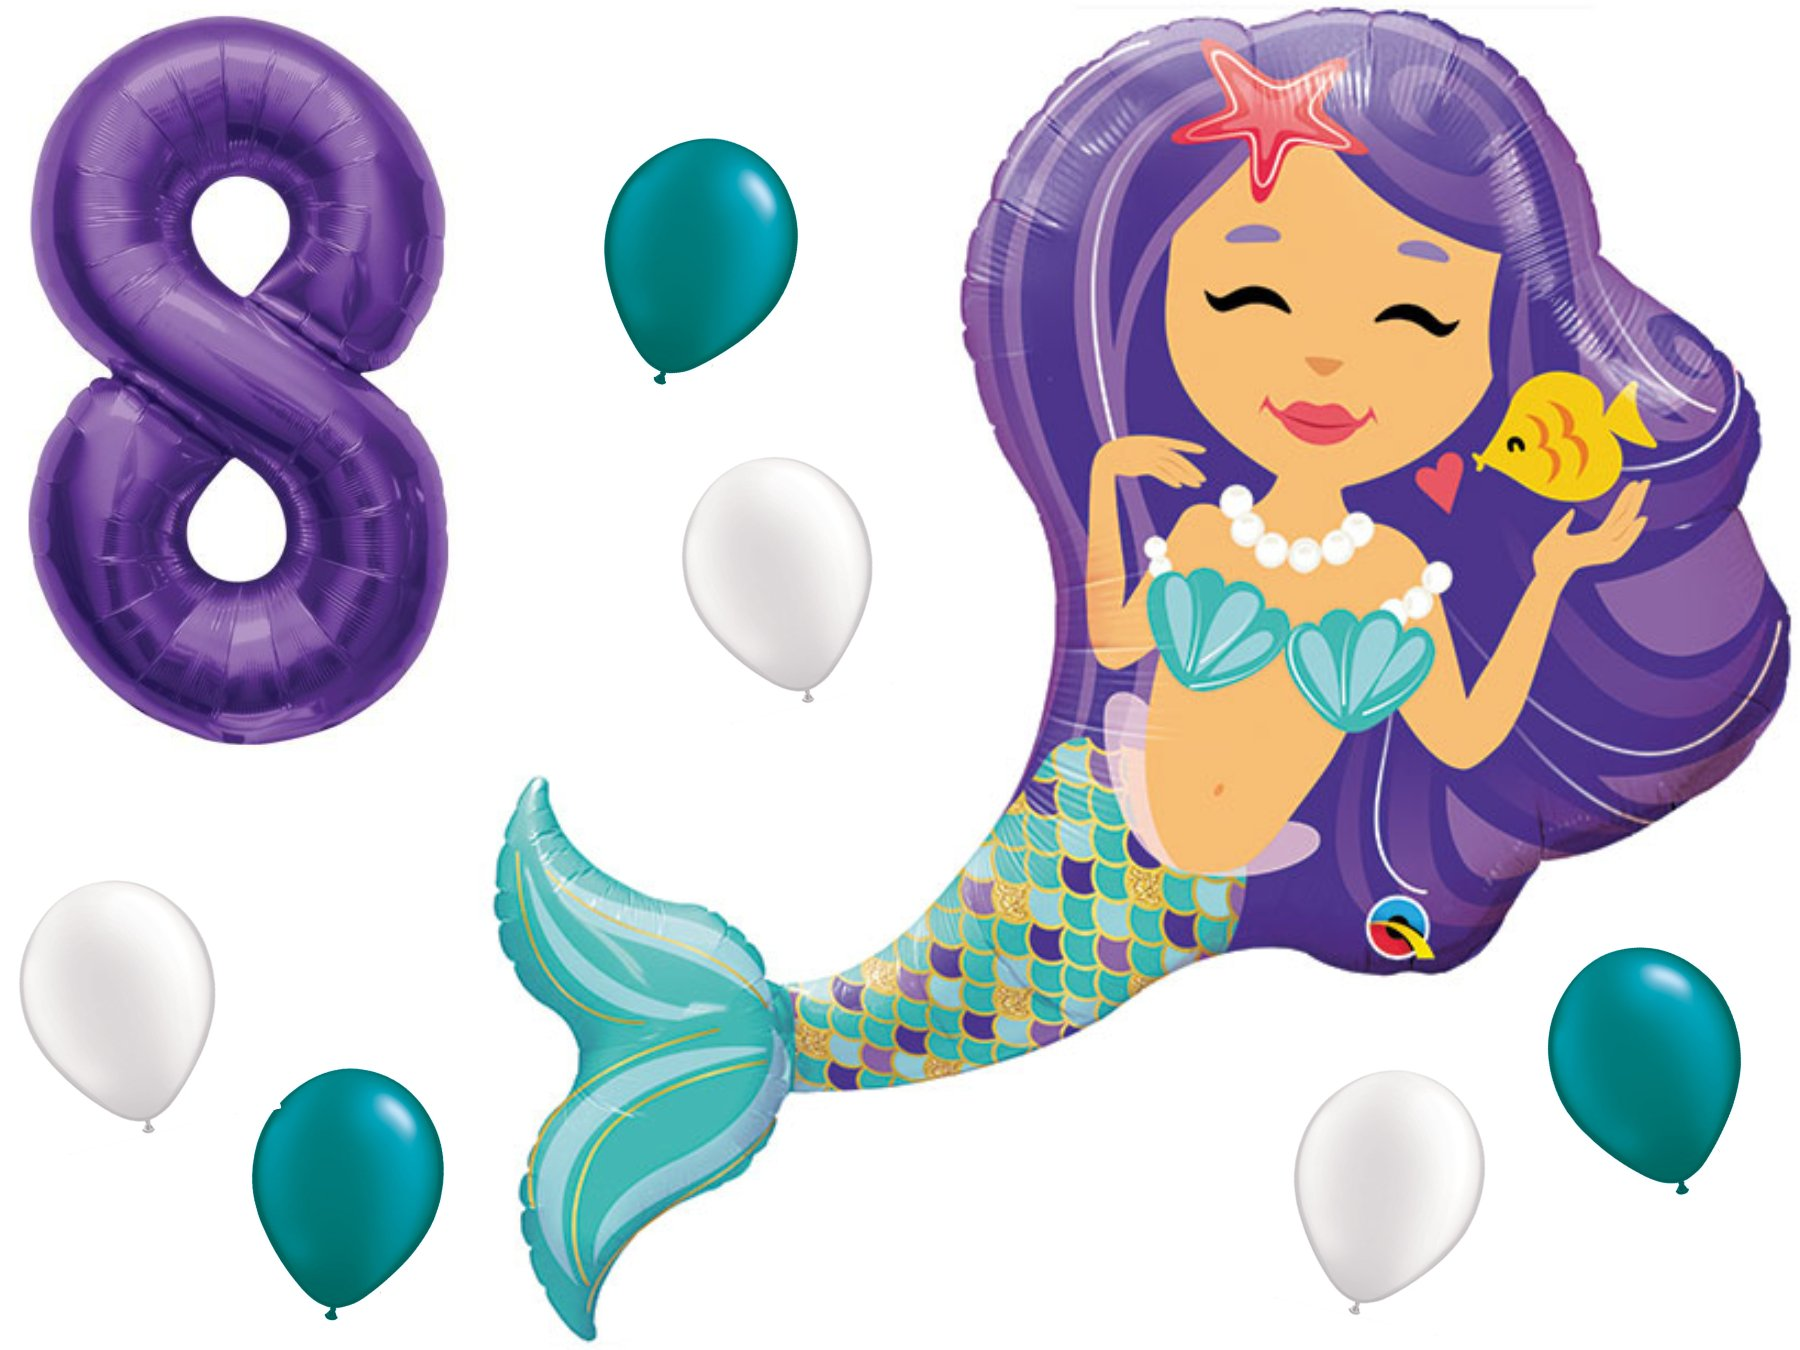 Mermaid Birthday Balloon Party Supply Set with #1-9 Number Bundle: 38'' Enchanted Mermaid with (1) 40'' Purple Number of Choice & (3 Each) White & Teal Latex Party Balloons. by PartyBox! (8th Birthday) by PartyBox!